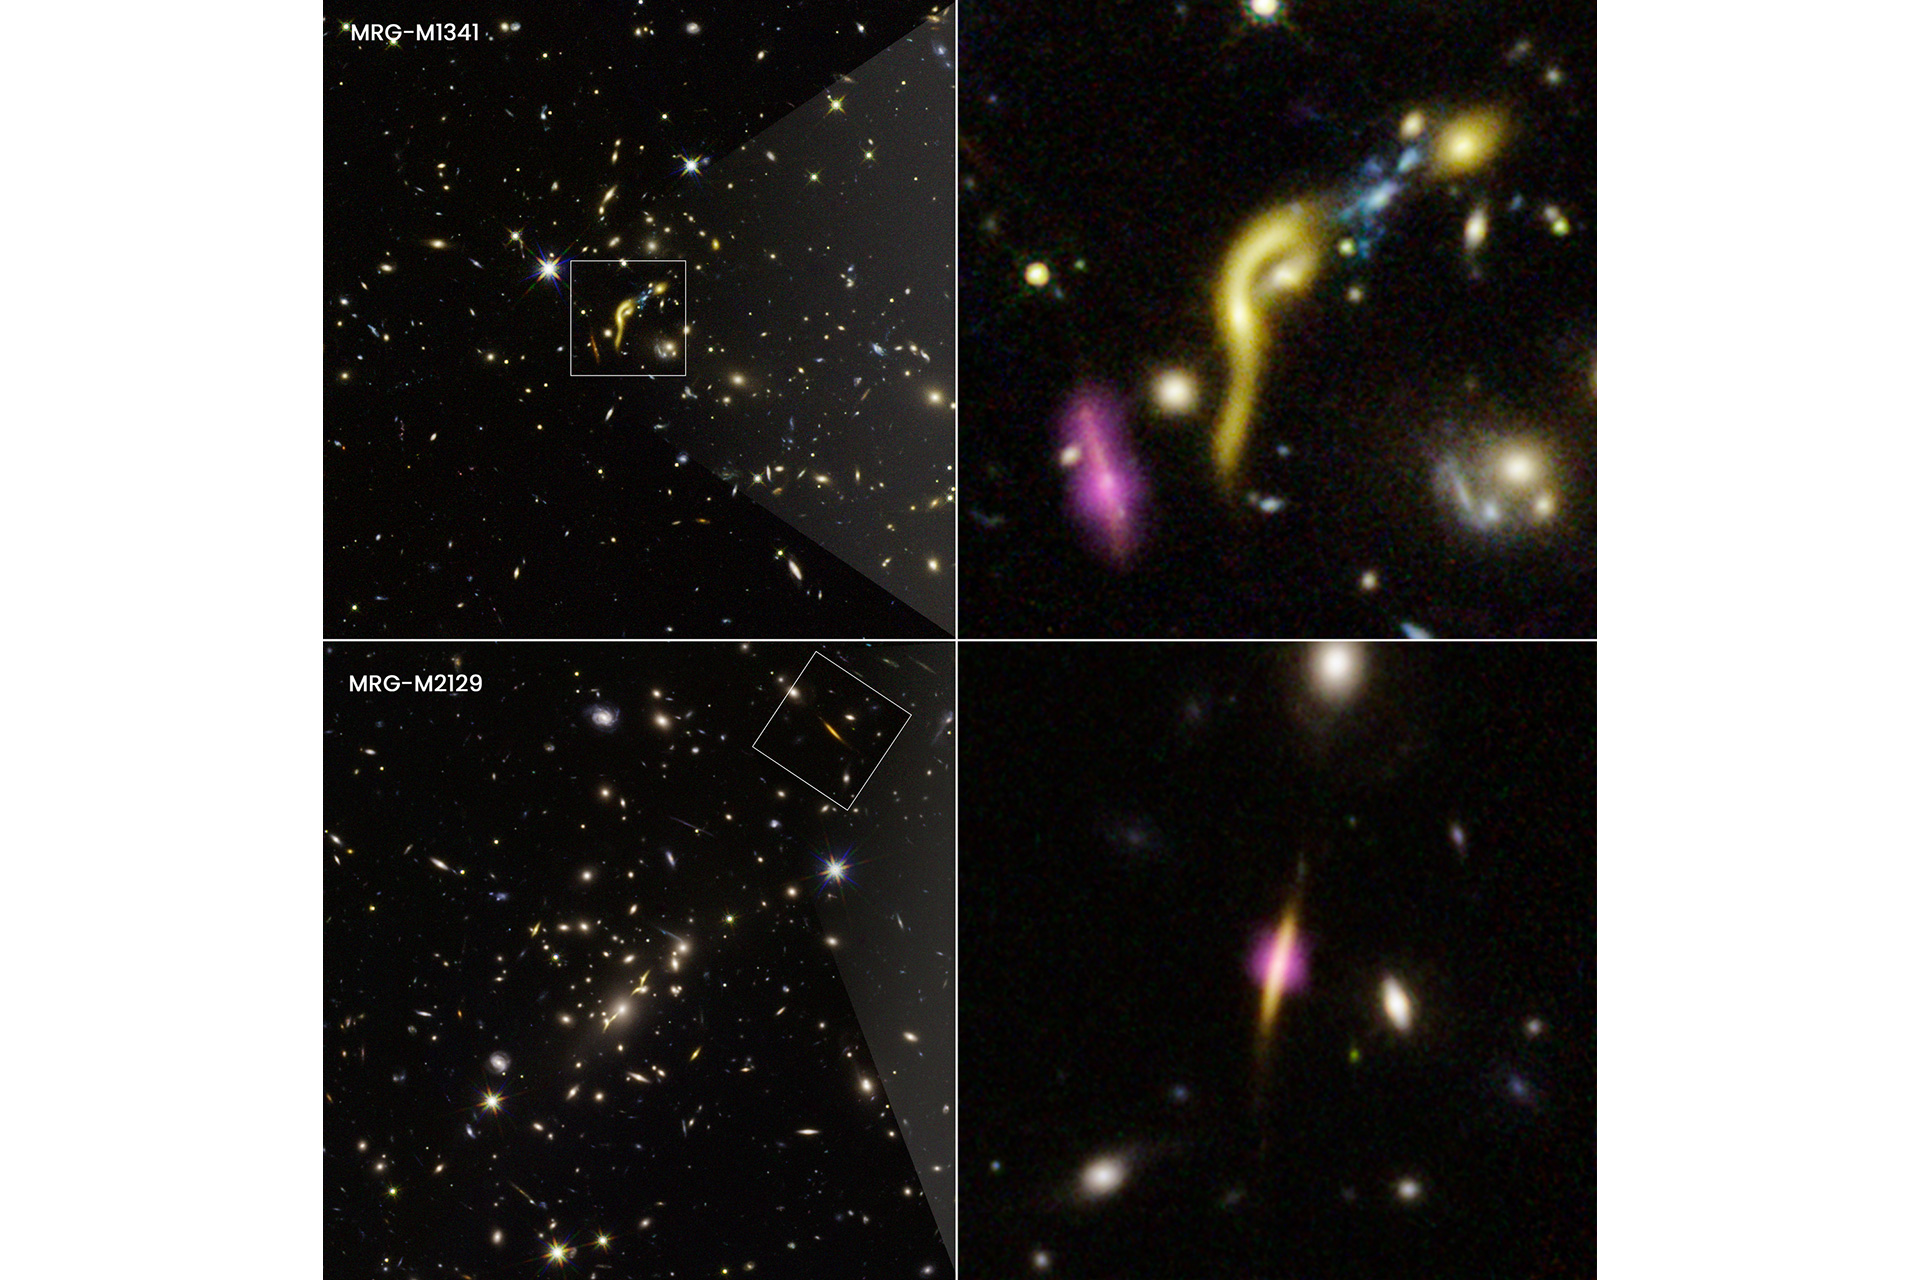 Hubble telescope helps find six 'dead' galaxies from the early universe   Engadget